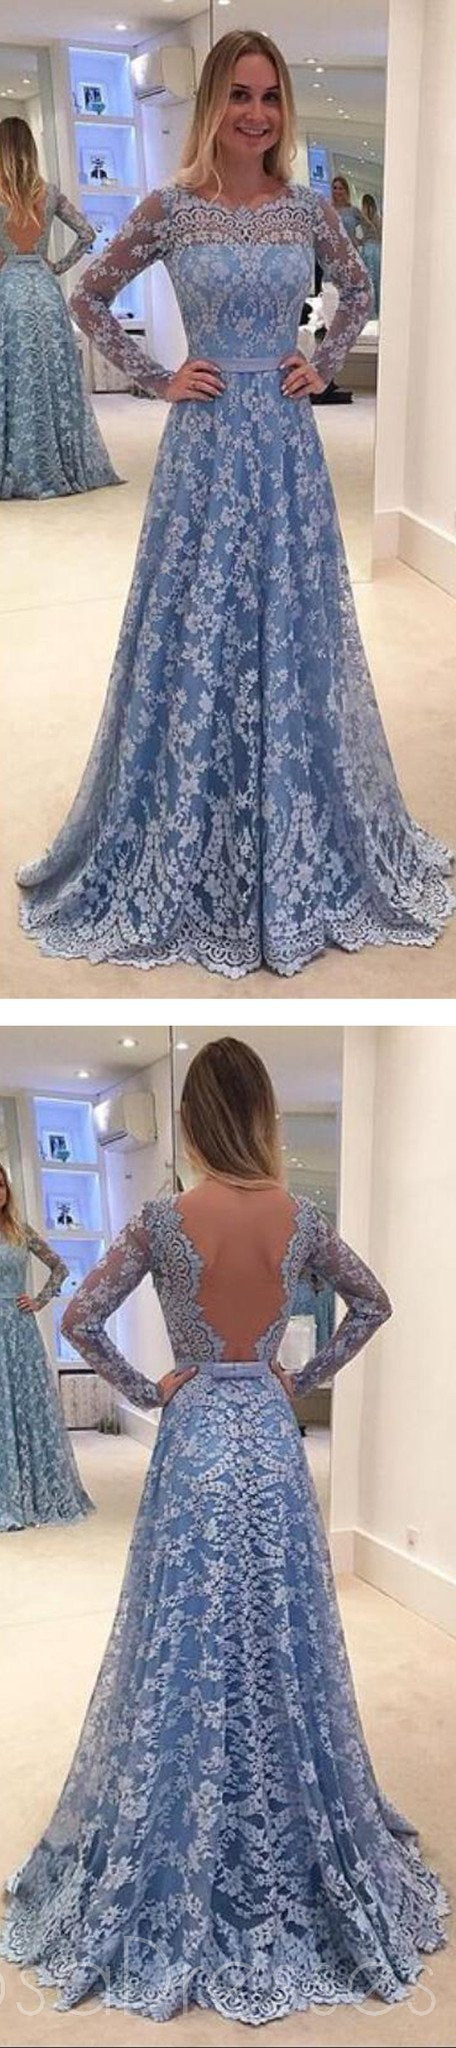 Lace Prom Dresses,Long Sleeves Prom Dresses,A-line Prom Dresses ...